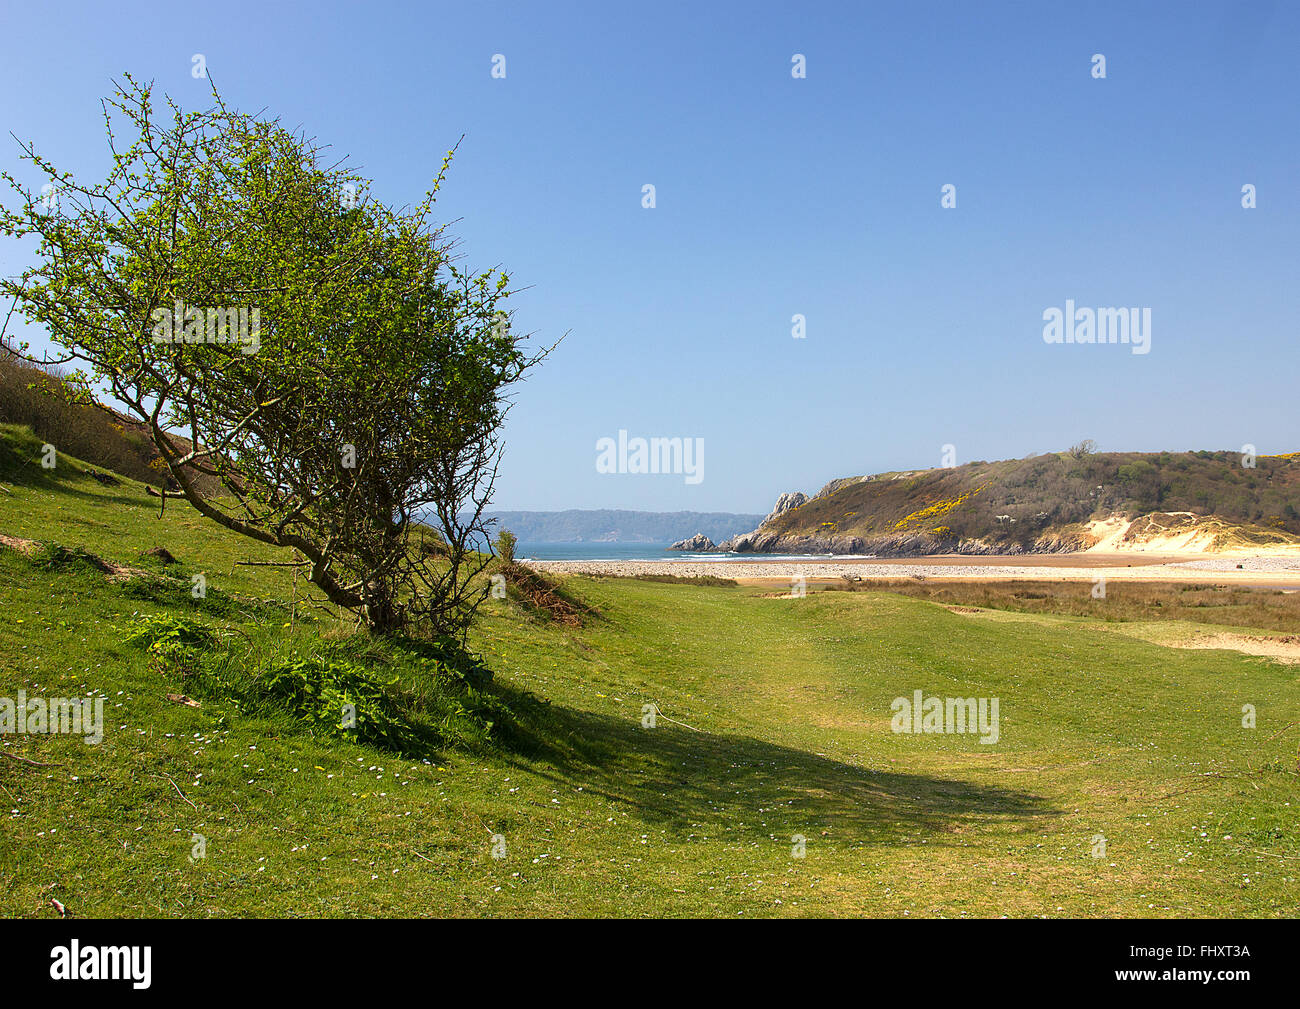 Three Cliffs Bay, a Windswept Tree, Gower, South Wales, UK - Stock Image